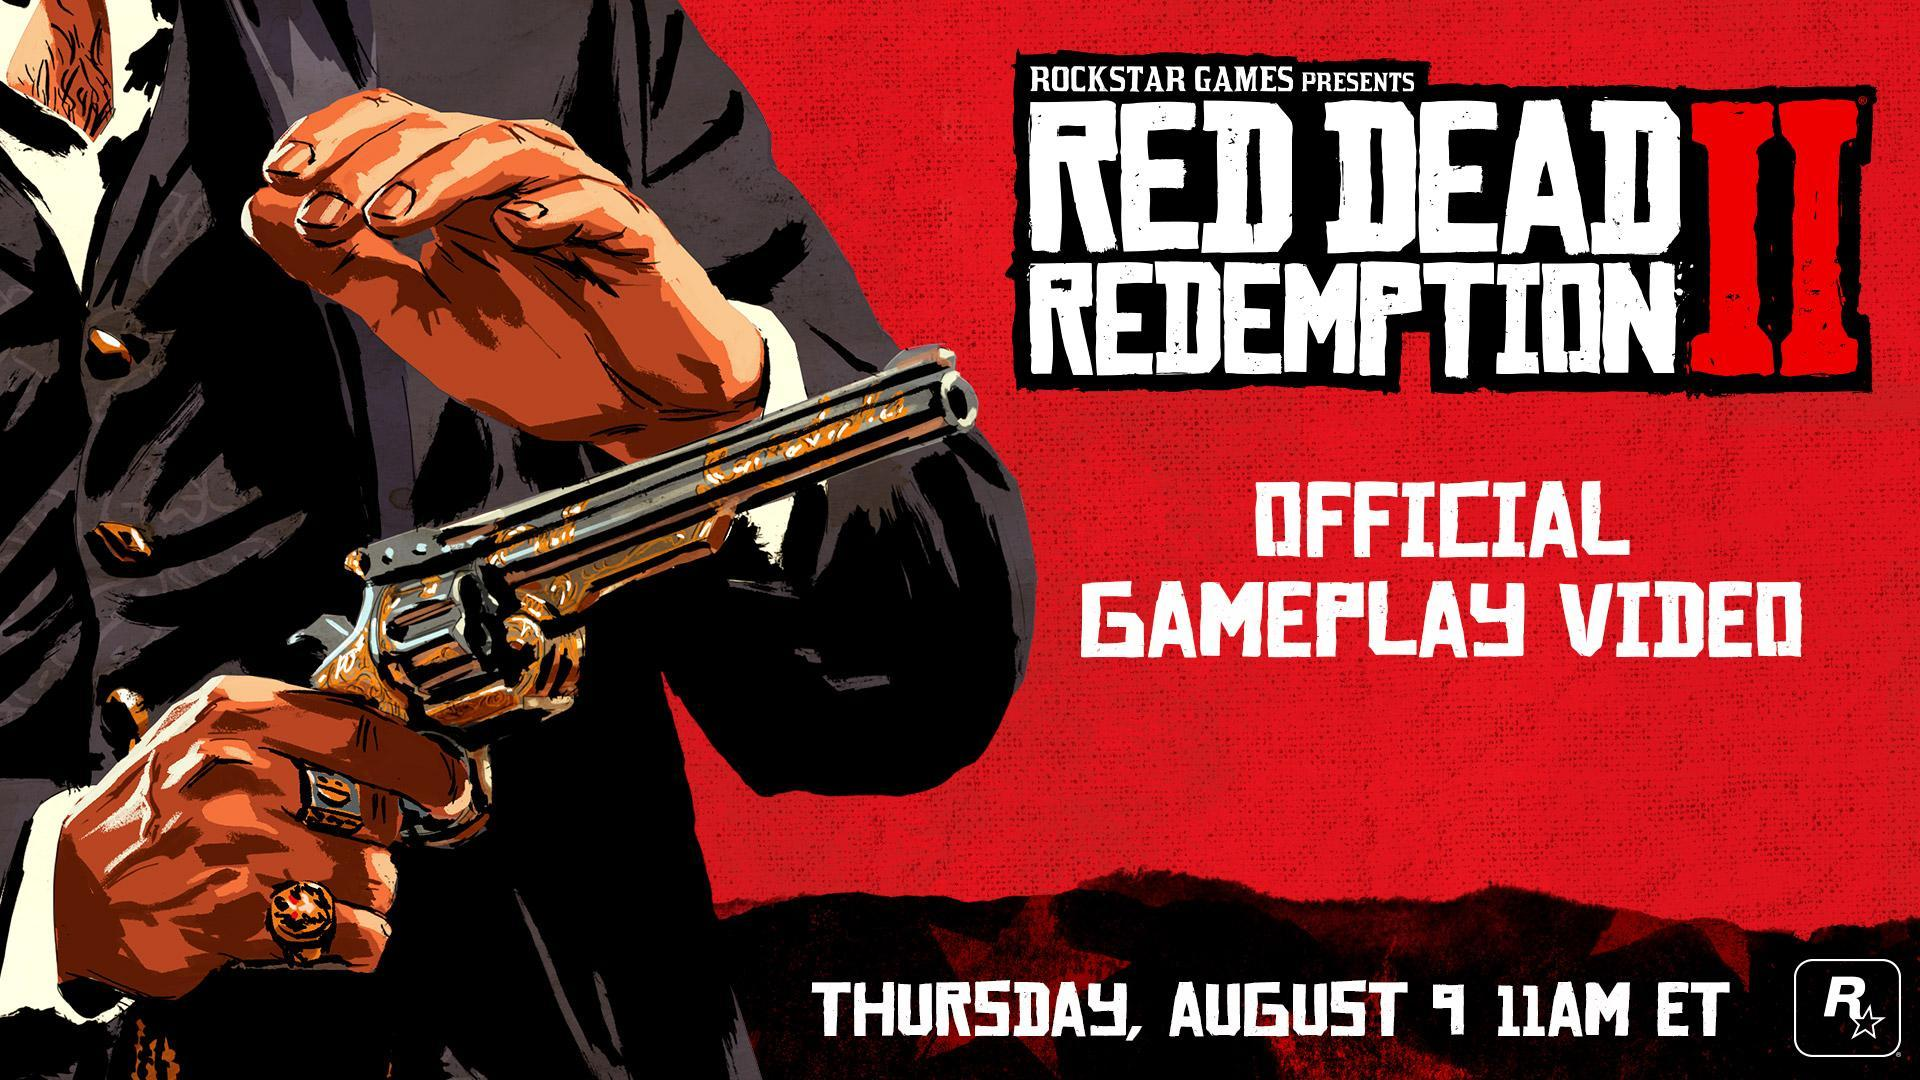 Red Dead Redemption 2: Official Gameplay Coming Thursday, August 9!